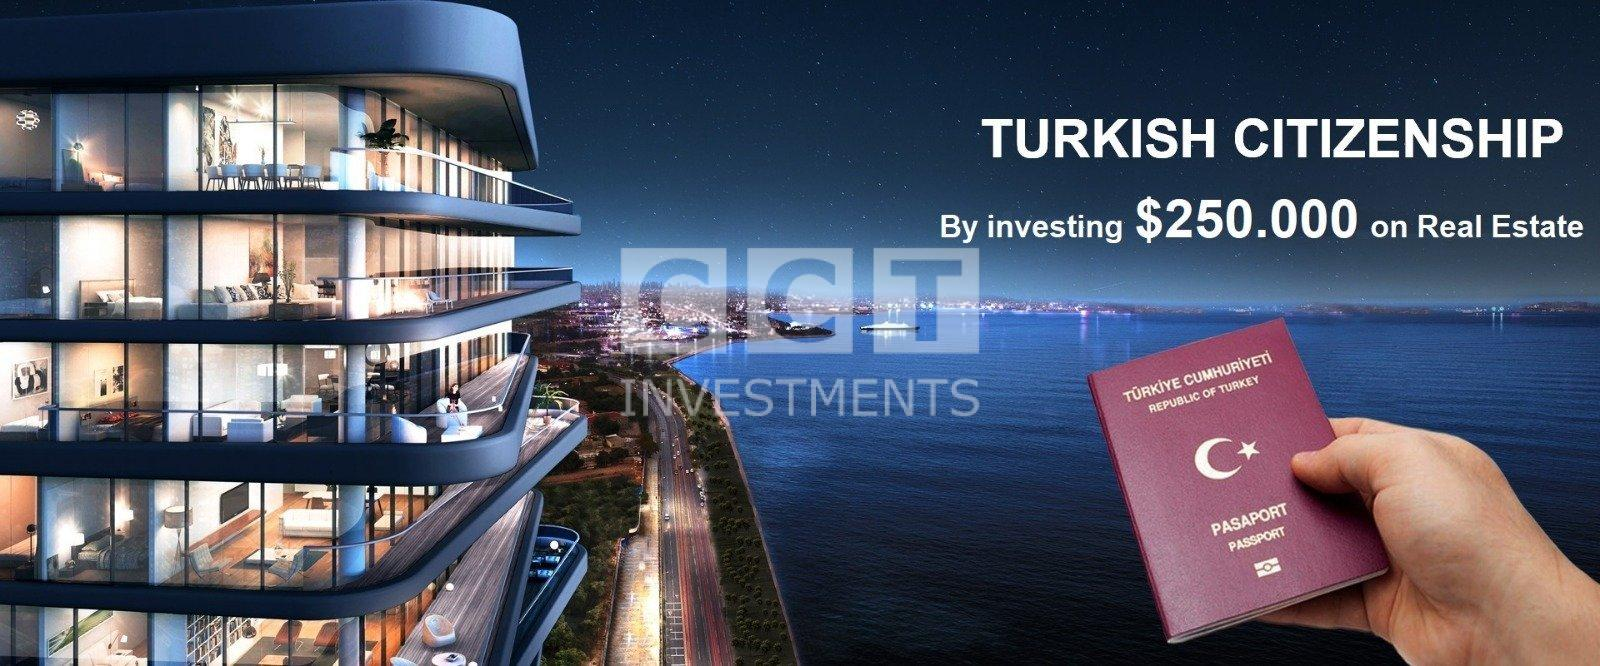 Turkish Citizenship By Investing 250000 Usd On Real Estate Cct